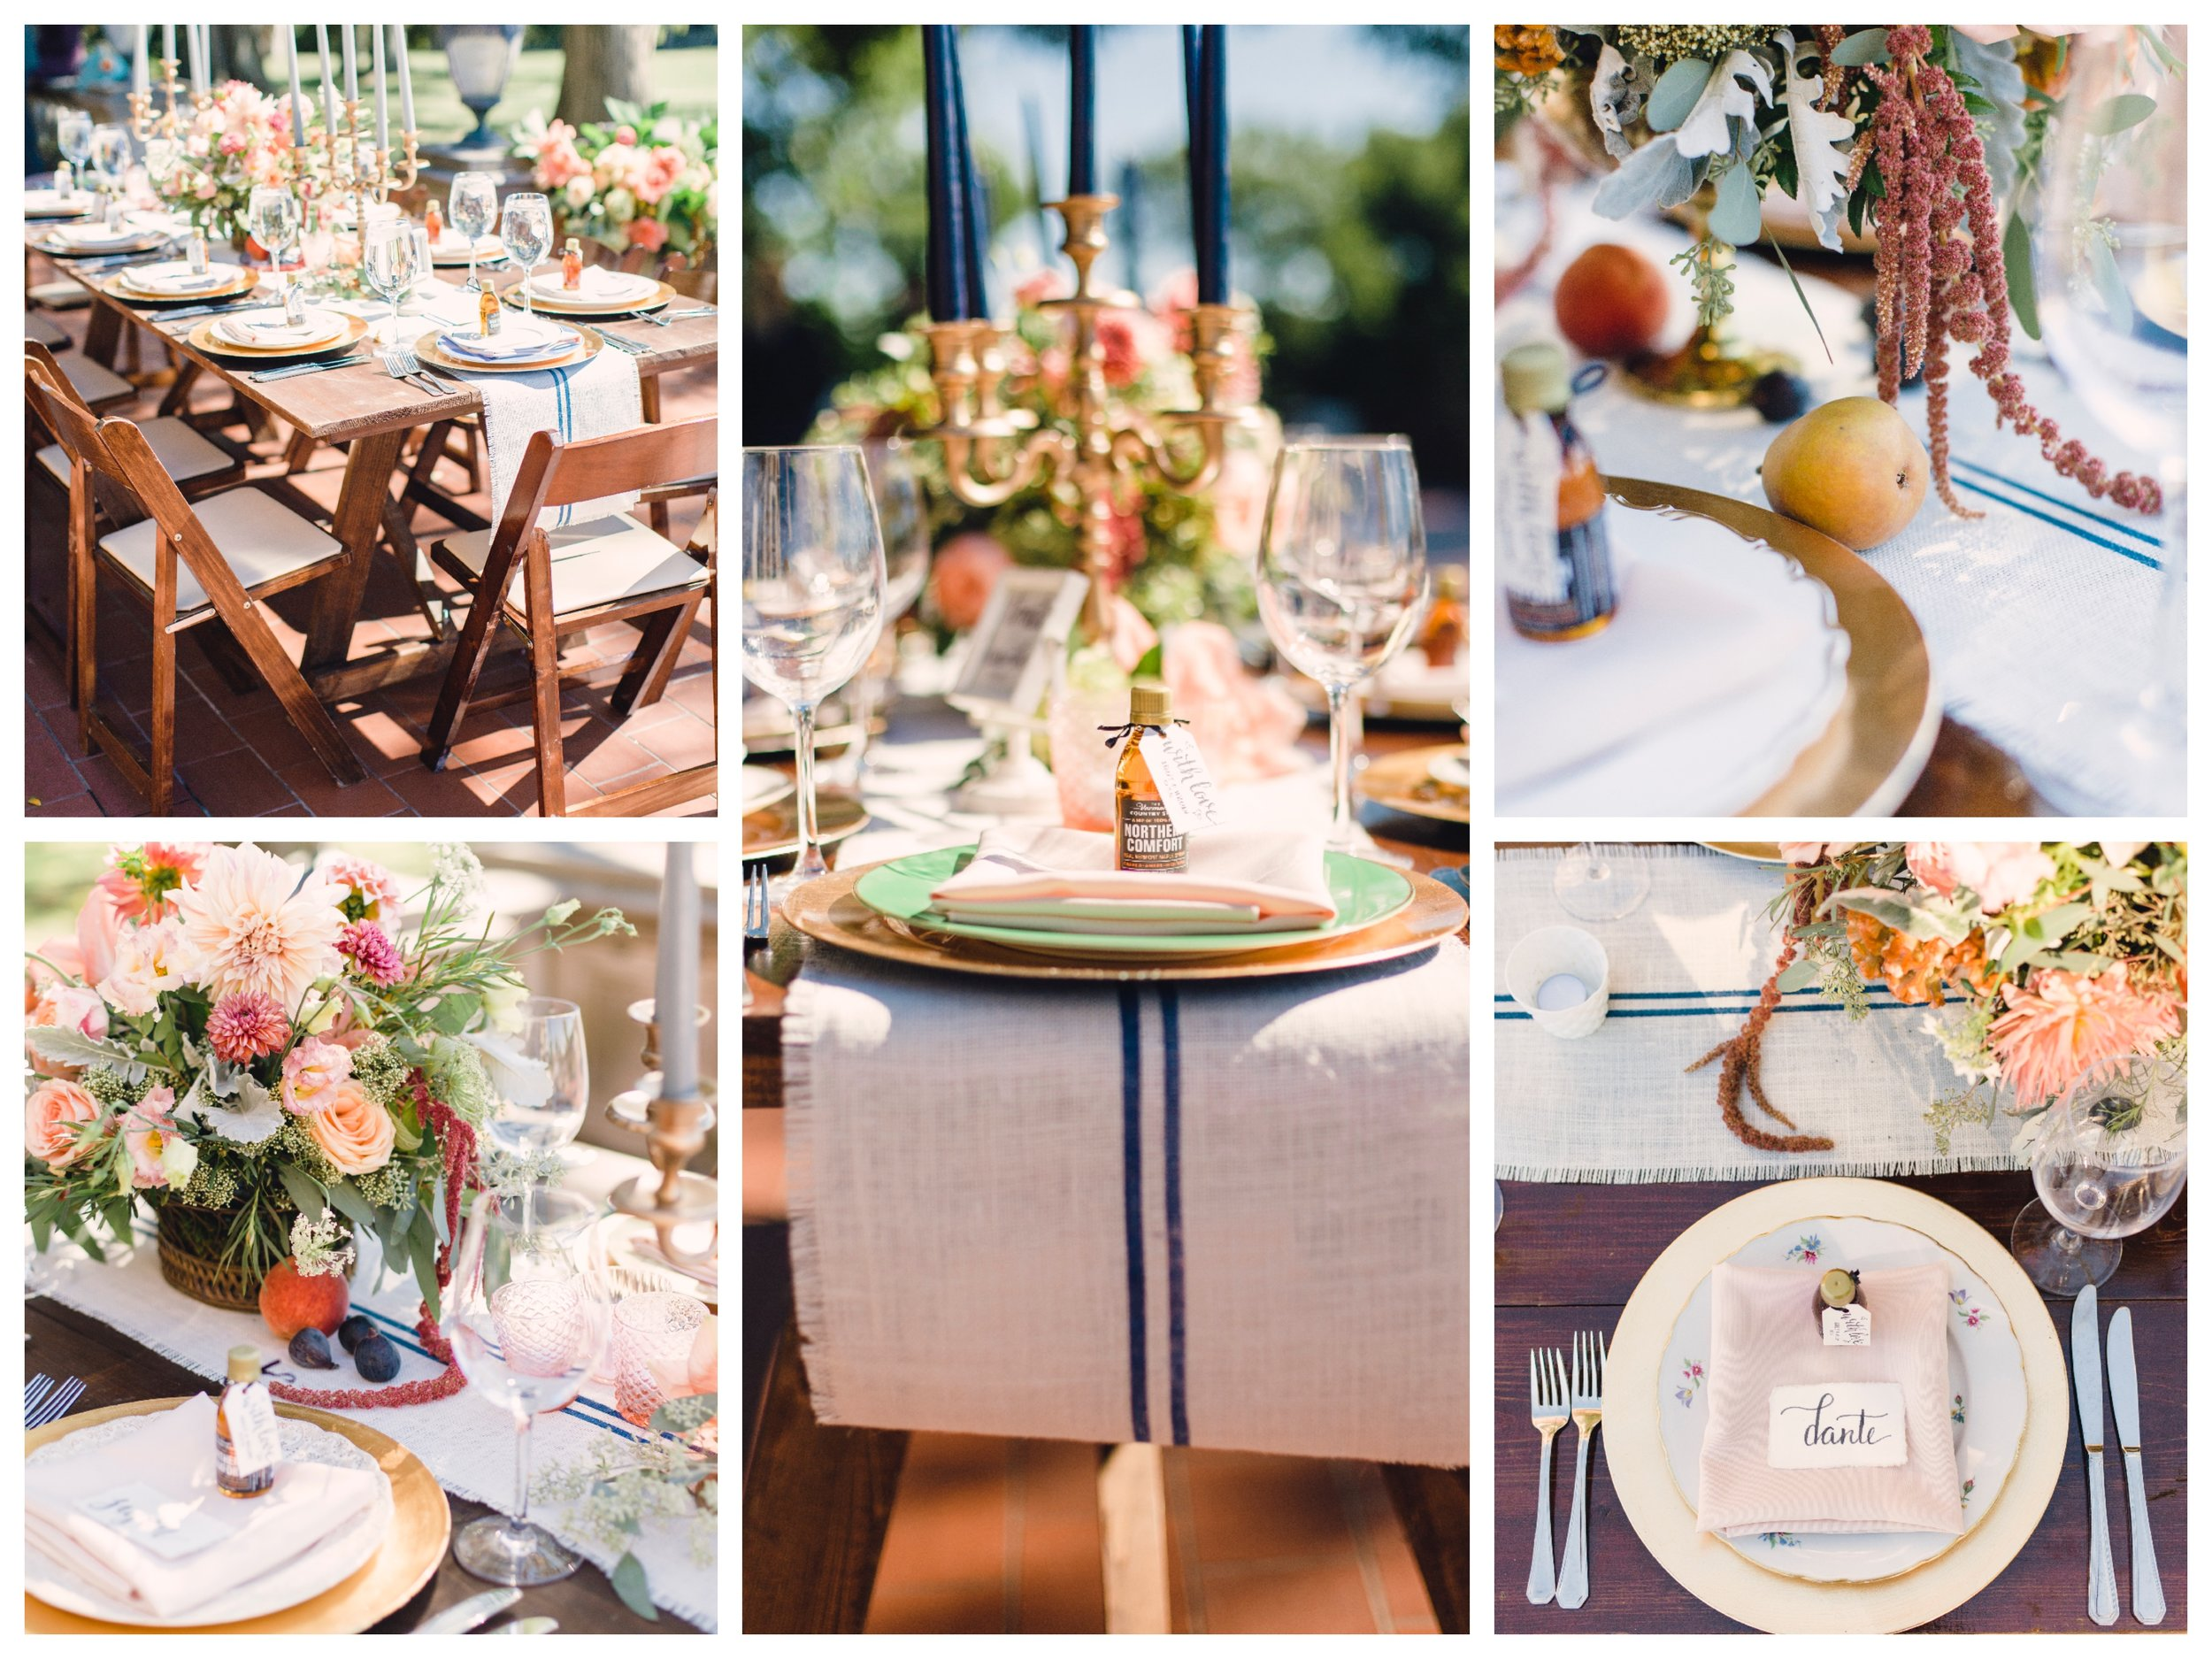 One of the most important things Ashley and Will had discussed with us is that they wanted their guests to really experience the Farm to Table feel of the food and design on the tables. So much so, that we added fresh fruit to the centerpieces!!